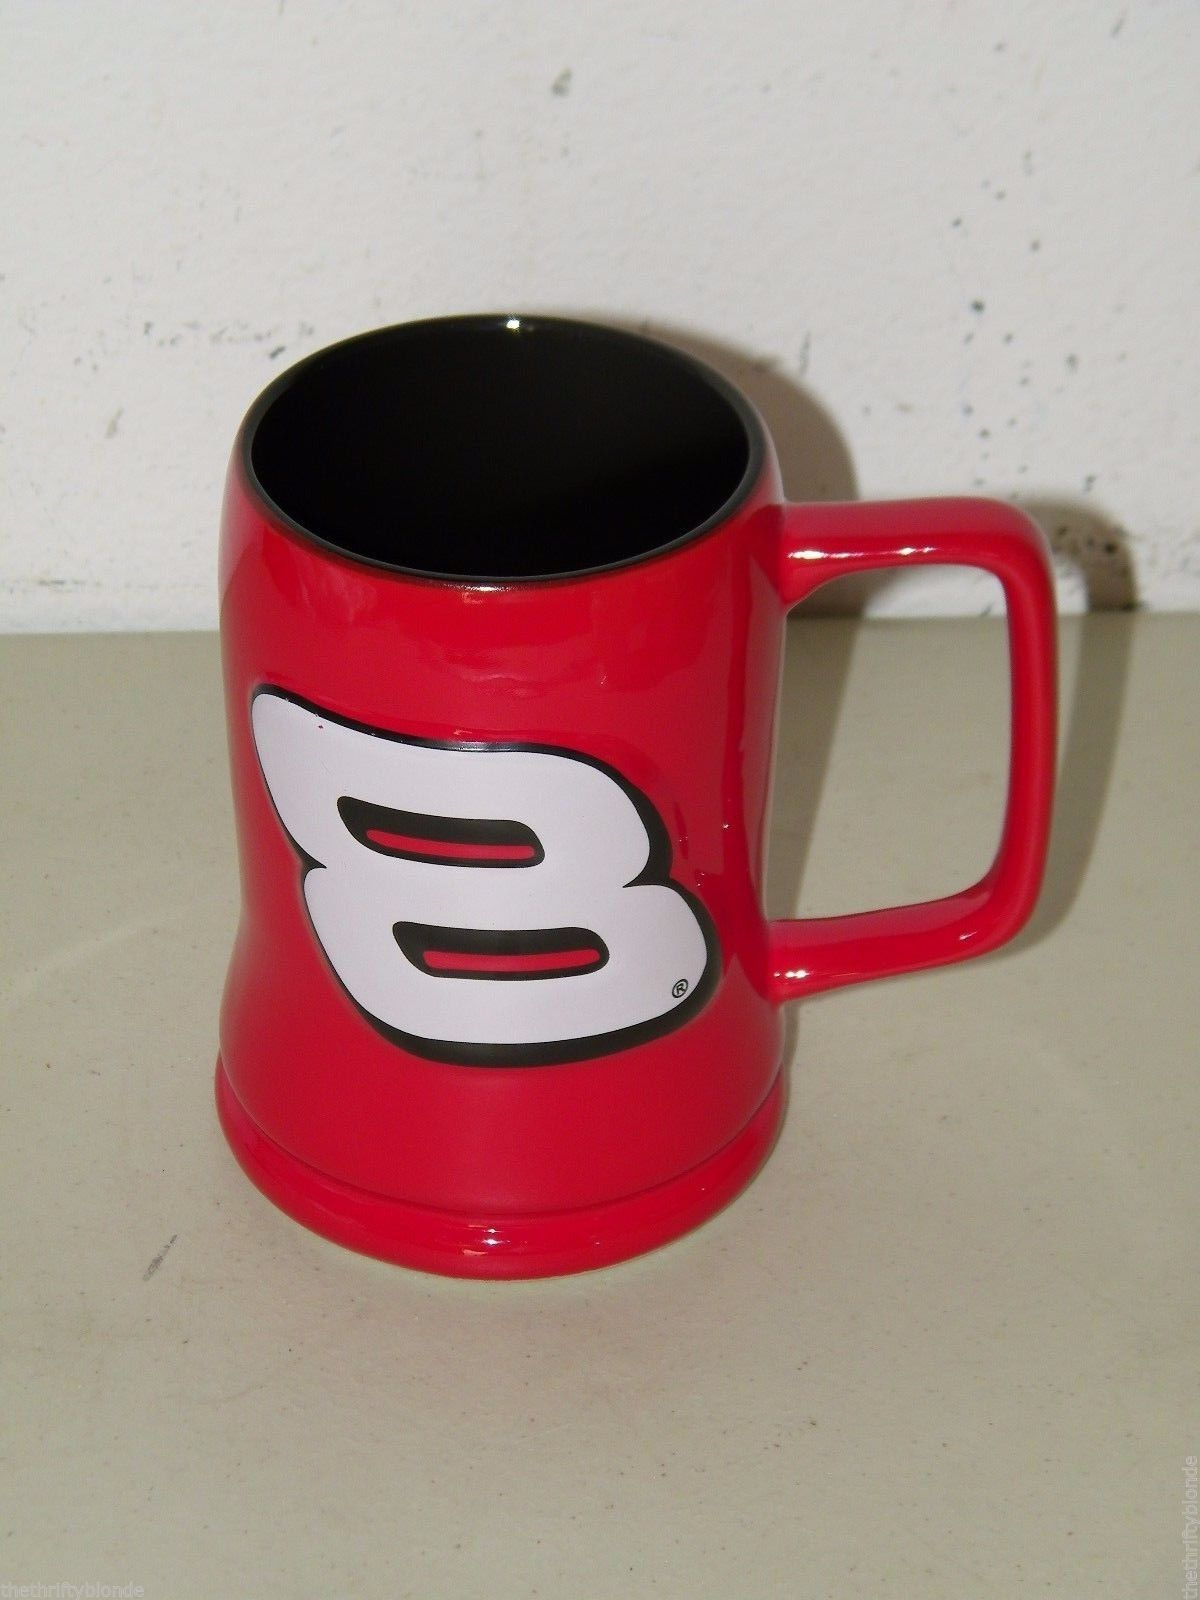 Dale Earnhardt Jr Coffee Mug #8 Nascar Red 16868